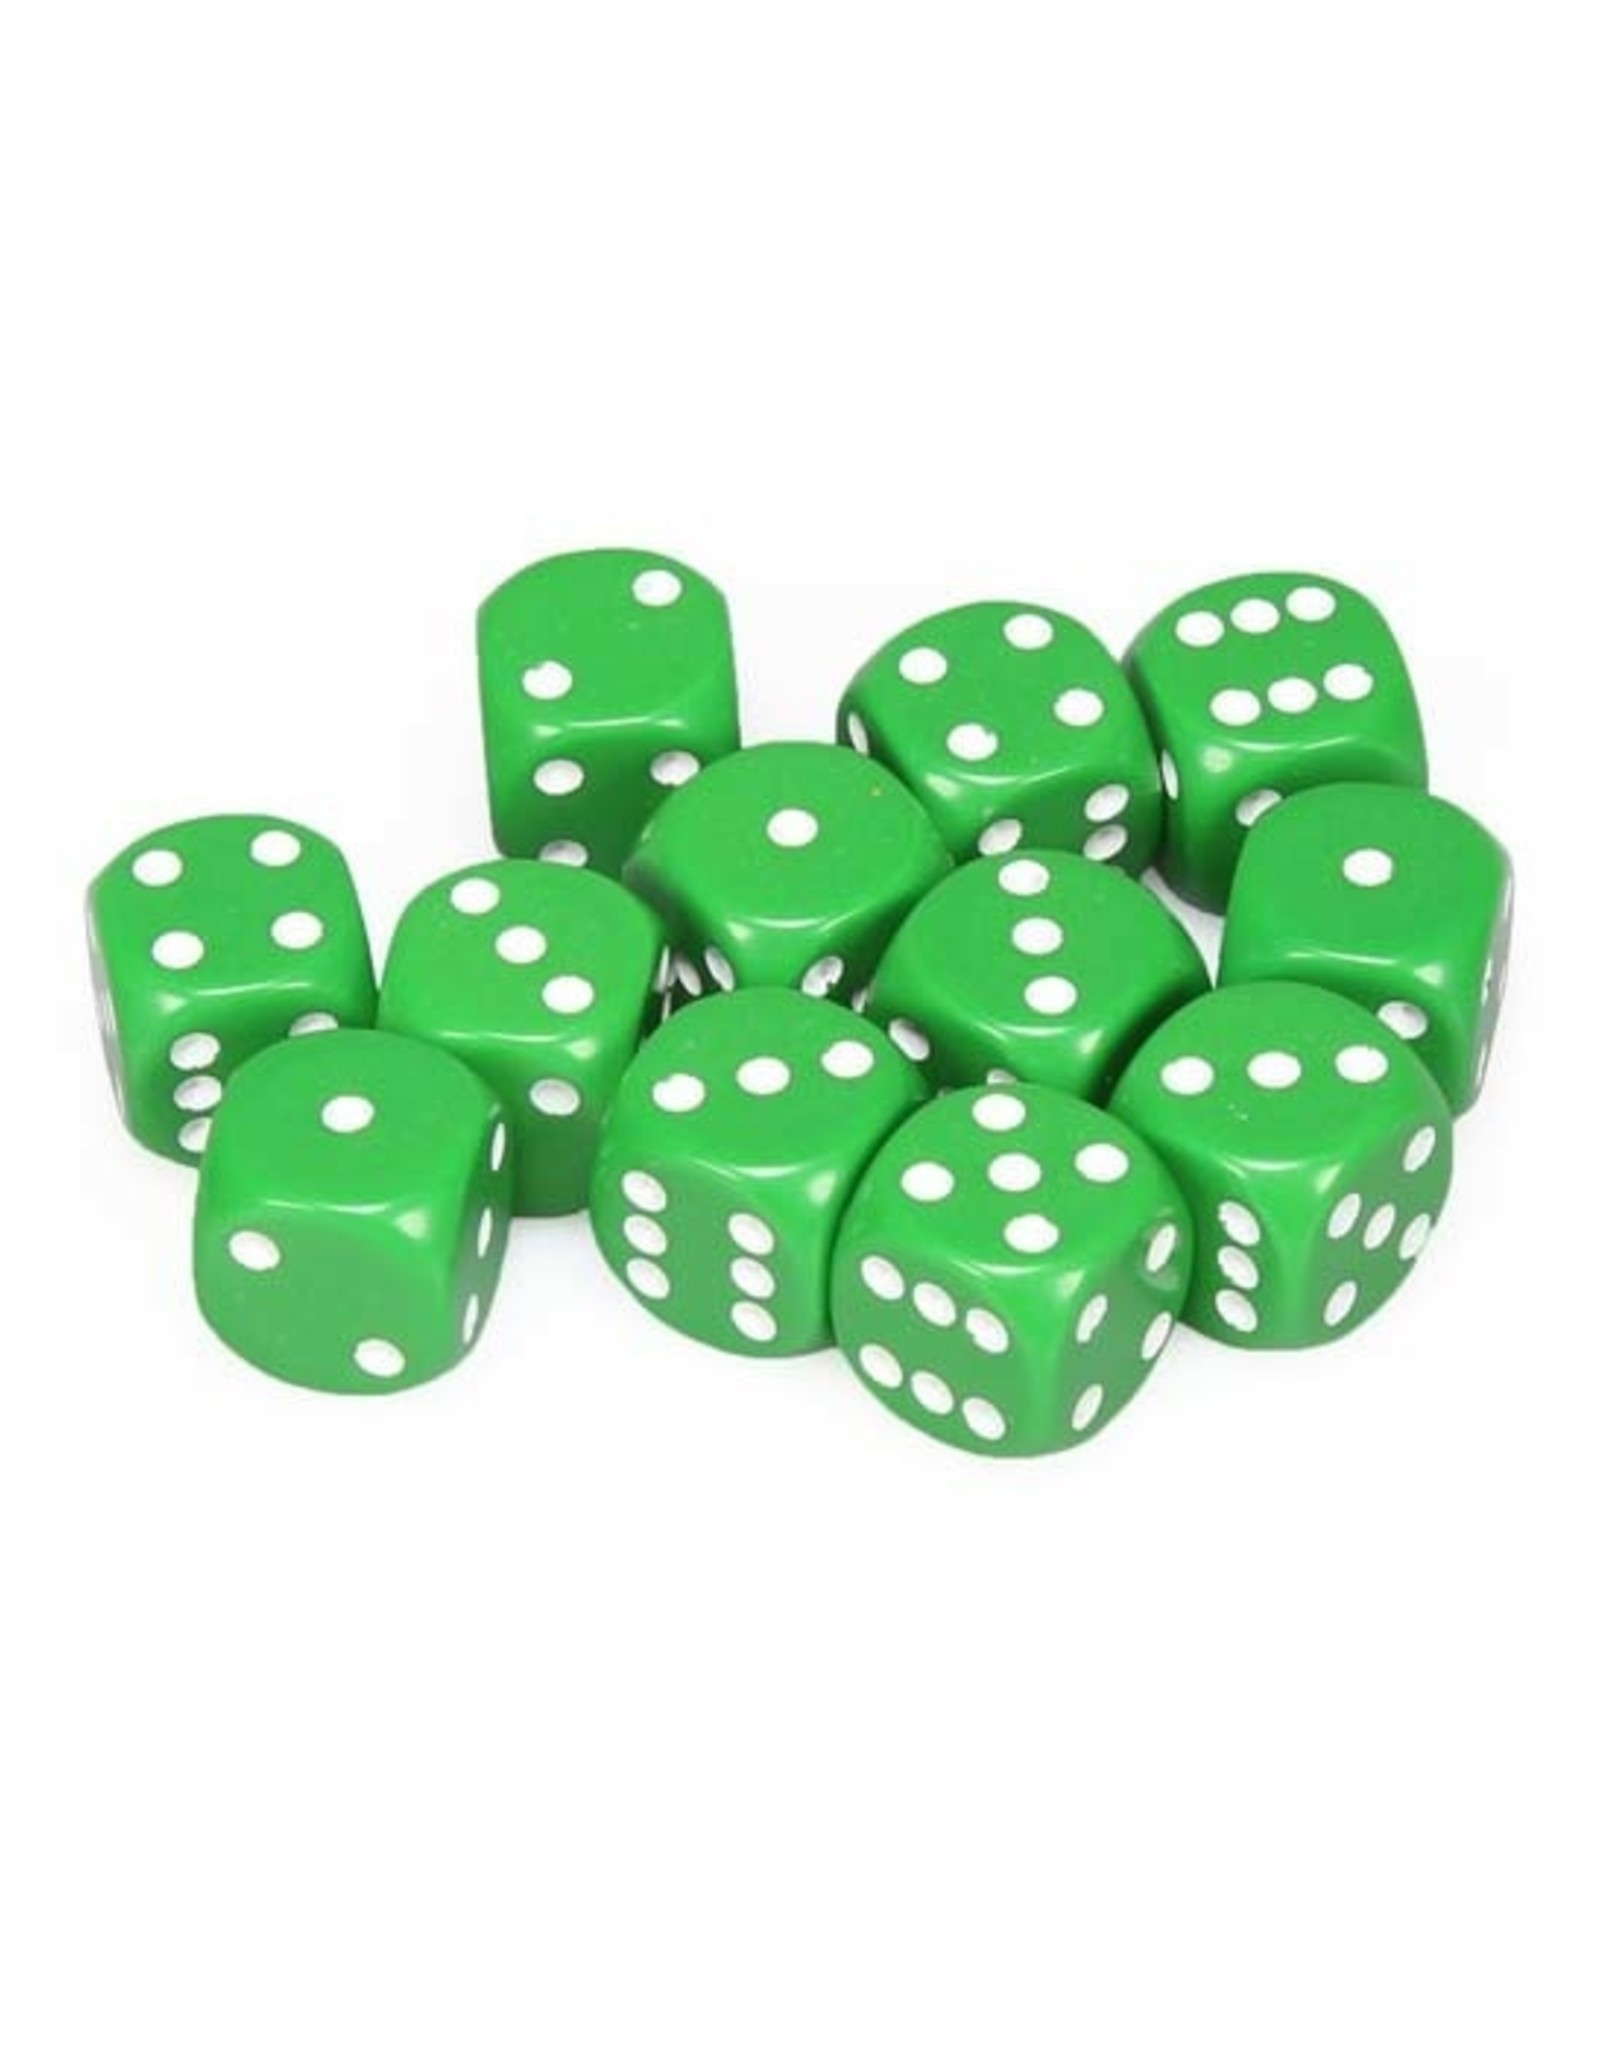 Chessex Chessex: 16mm D6 - Opaque - Green w/ White